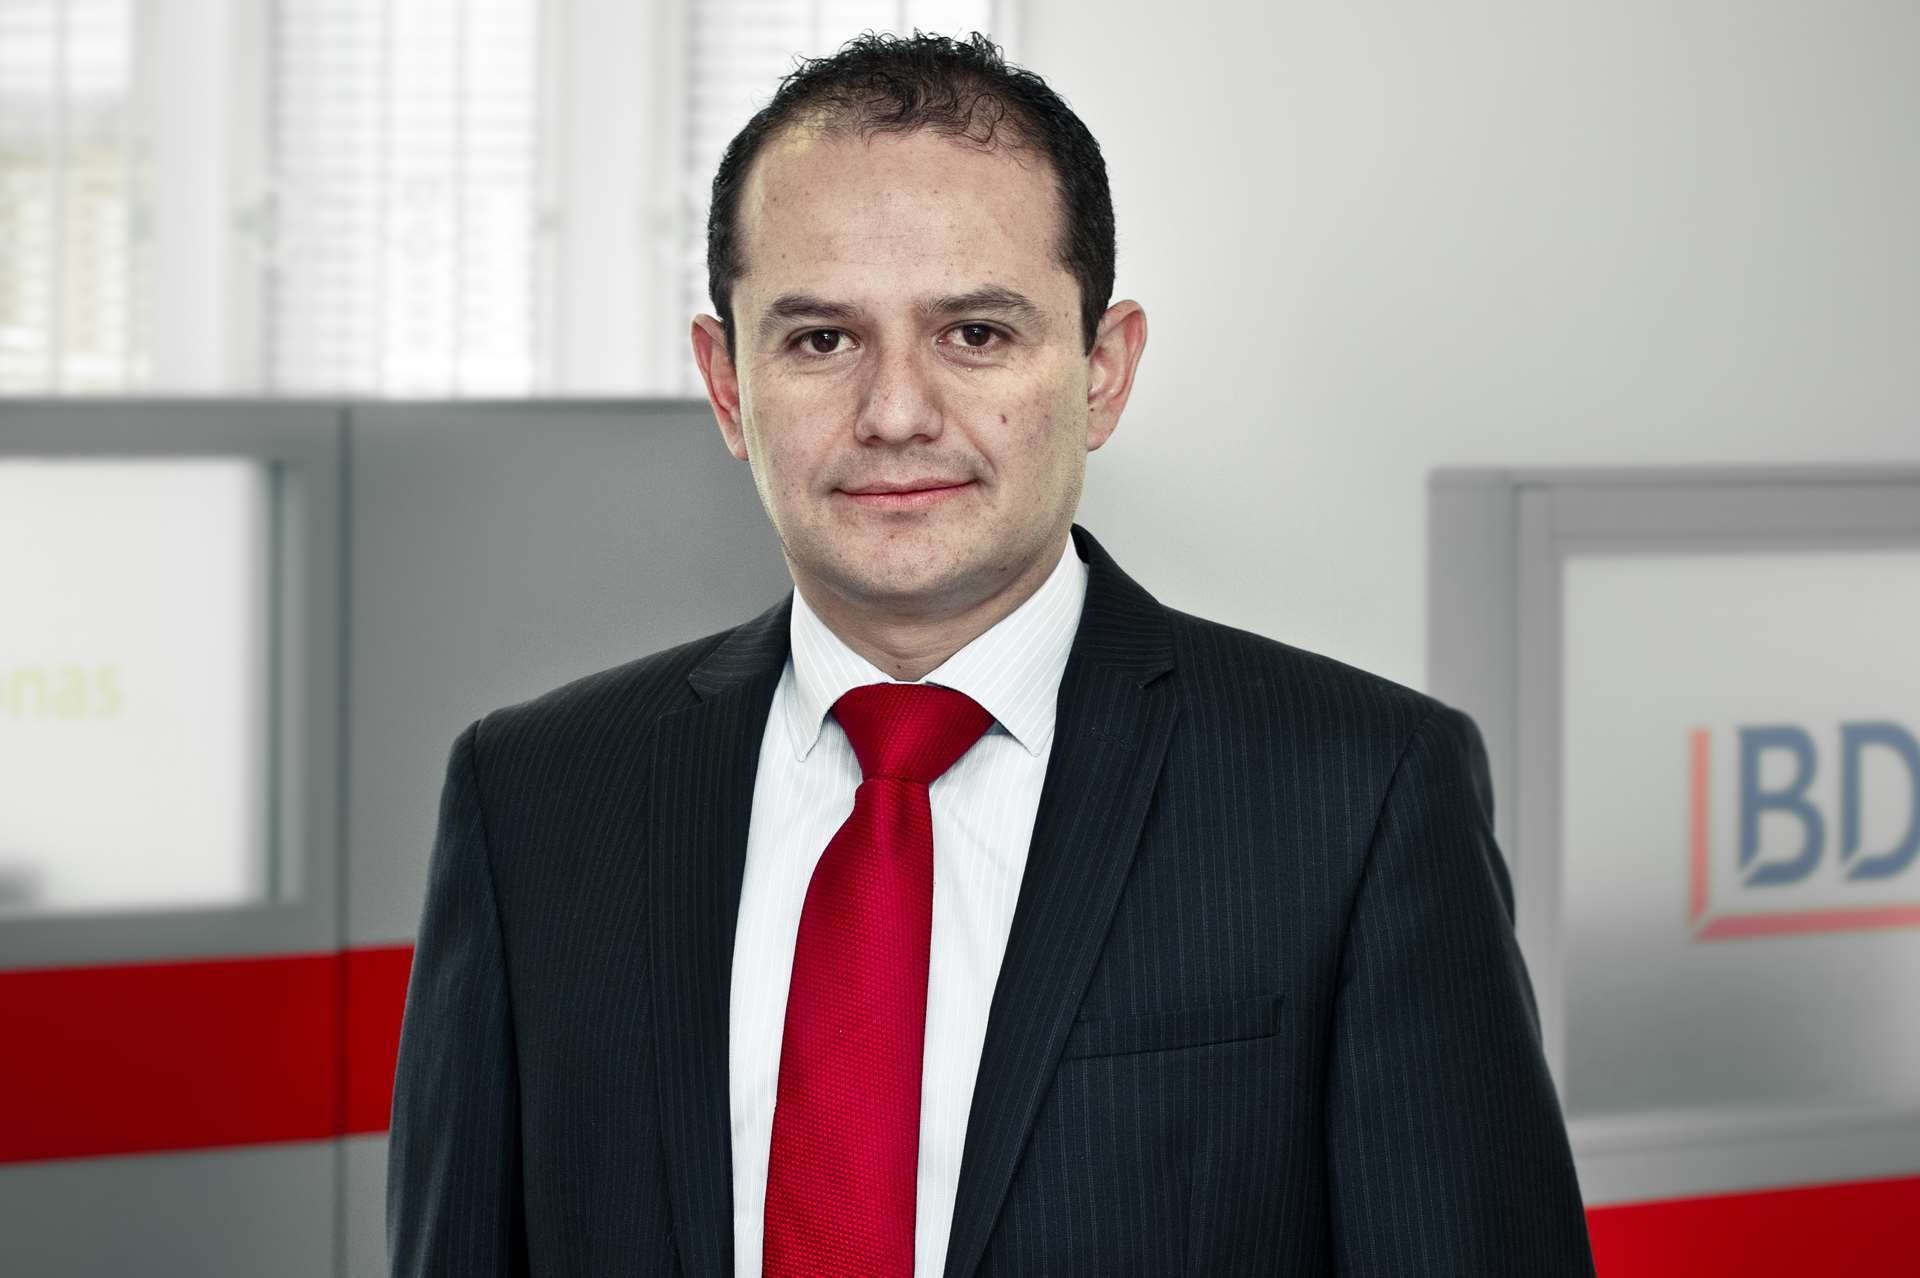 José Odair Suárez Sosa, Senior Manager Audit & Assurance